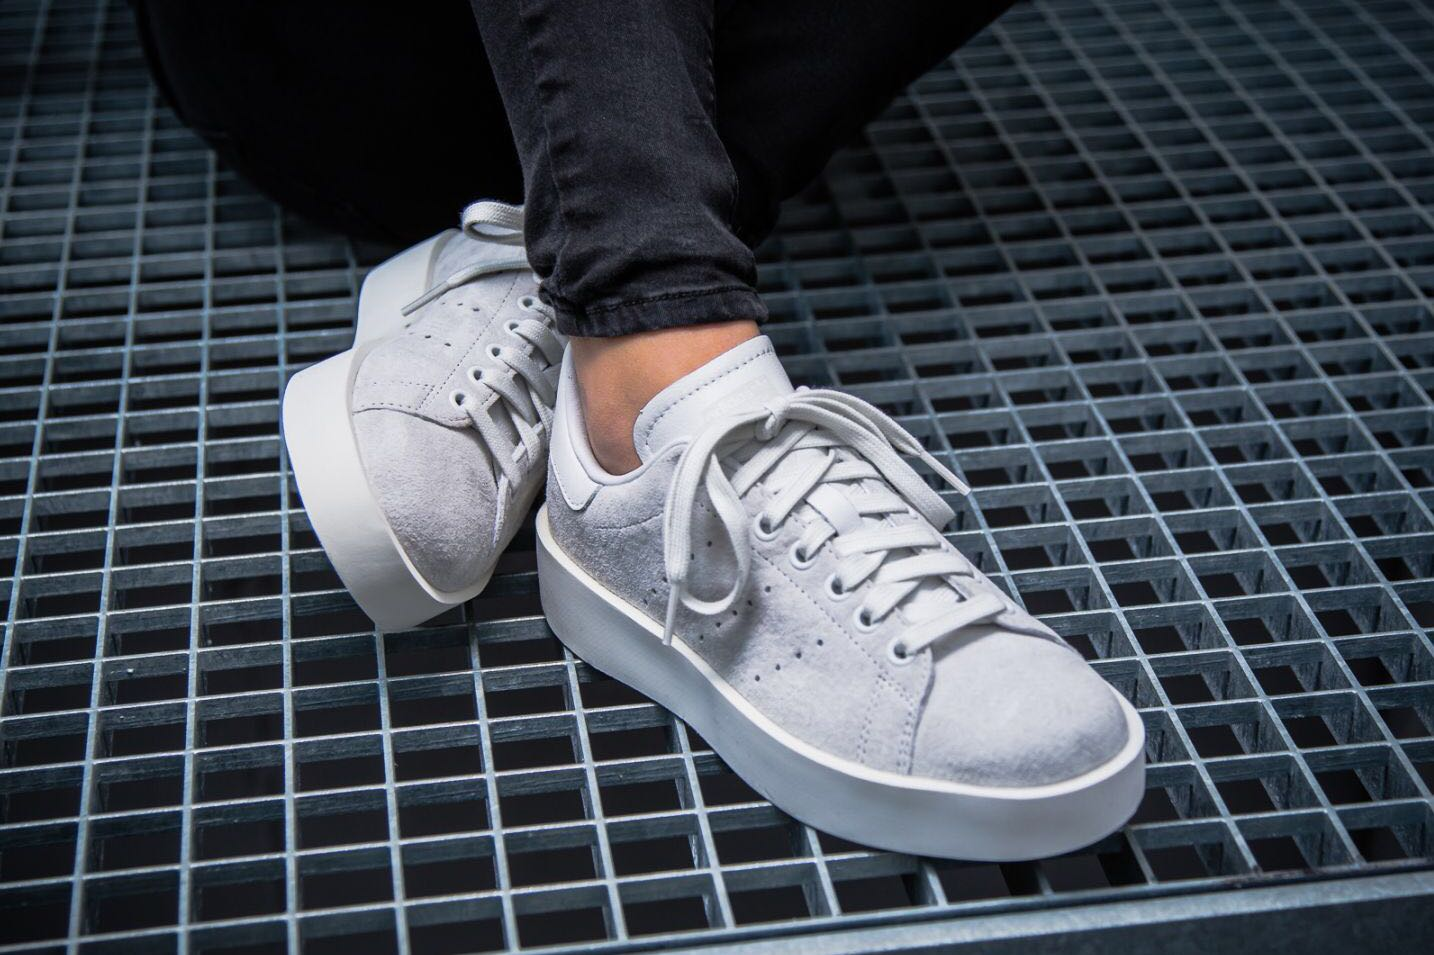 96dedc4be144 Adidas Stan Smith Bold - Grey  CG3776